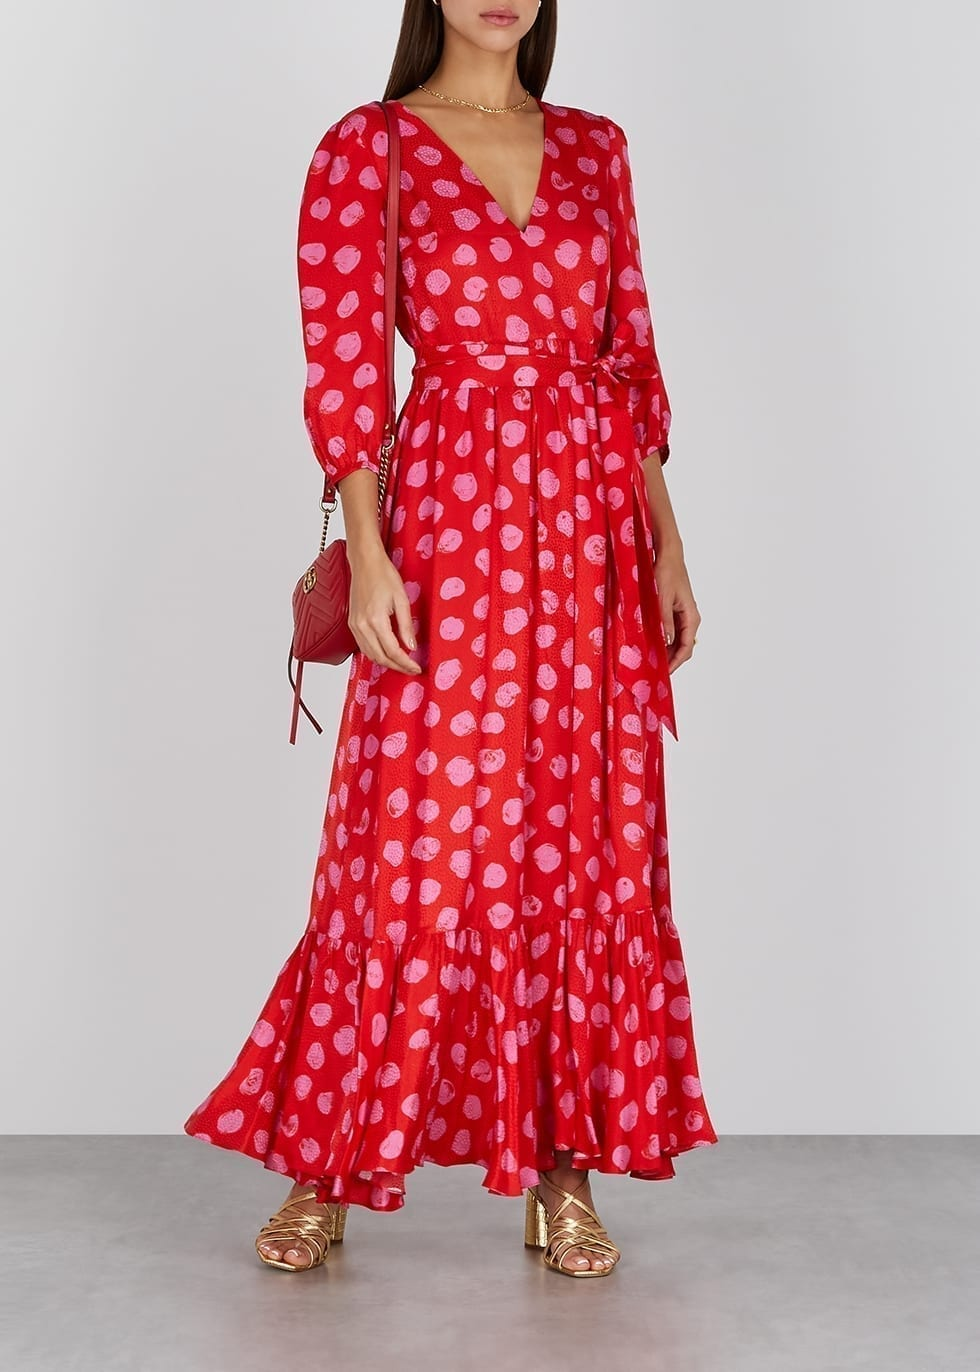 BORGO DE NOR Ariel Polka-dot Satin Midi Dress